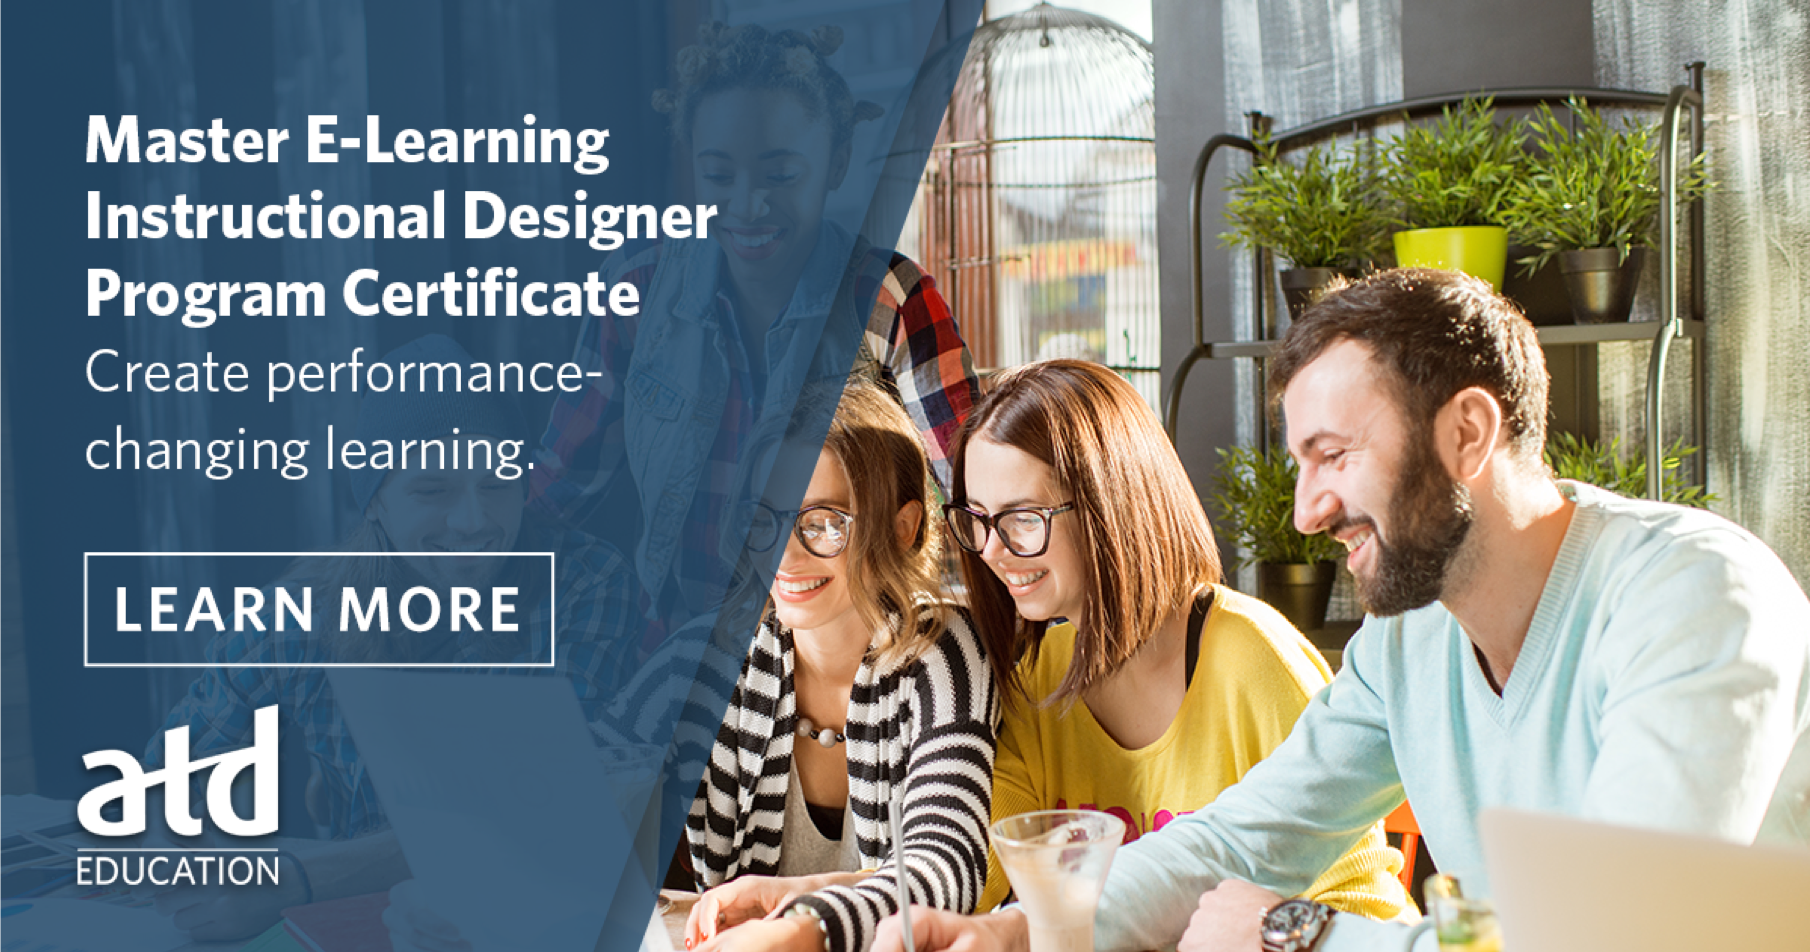 Association For Talent Development Atd On Twitter The Atd Master E Learning Instructional Designer Program Introduces An E Learning Design Model That Will Take Your Initiatives To The Next Level While Working Through Every